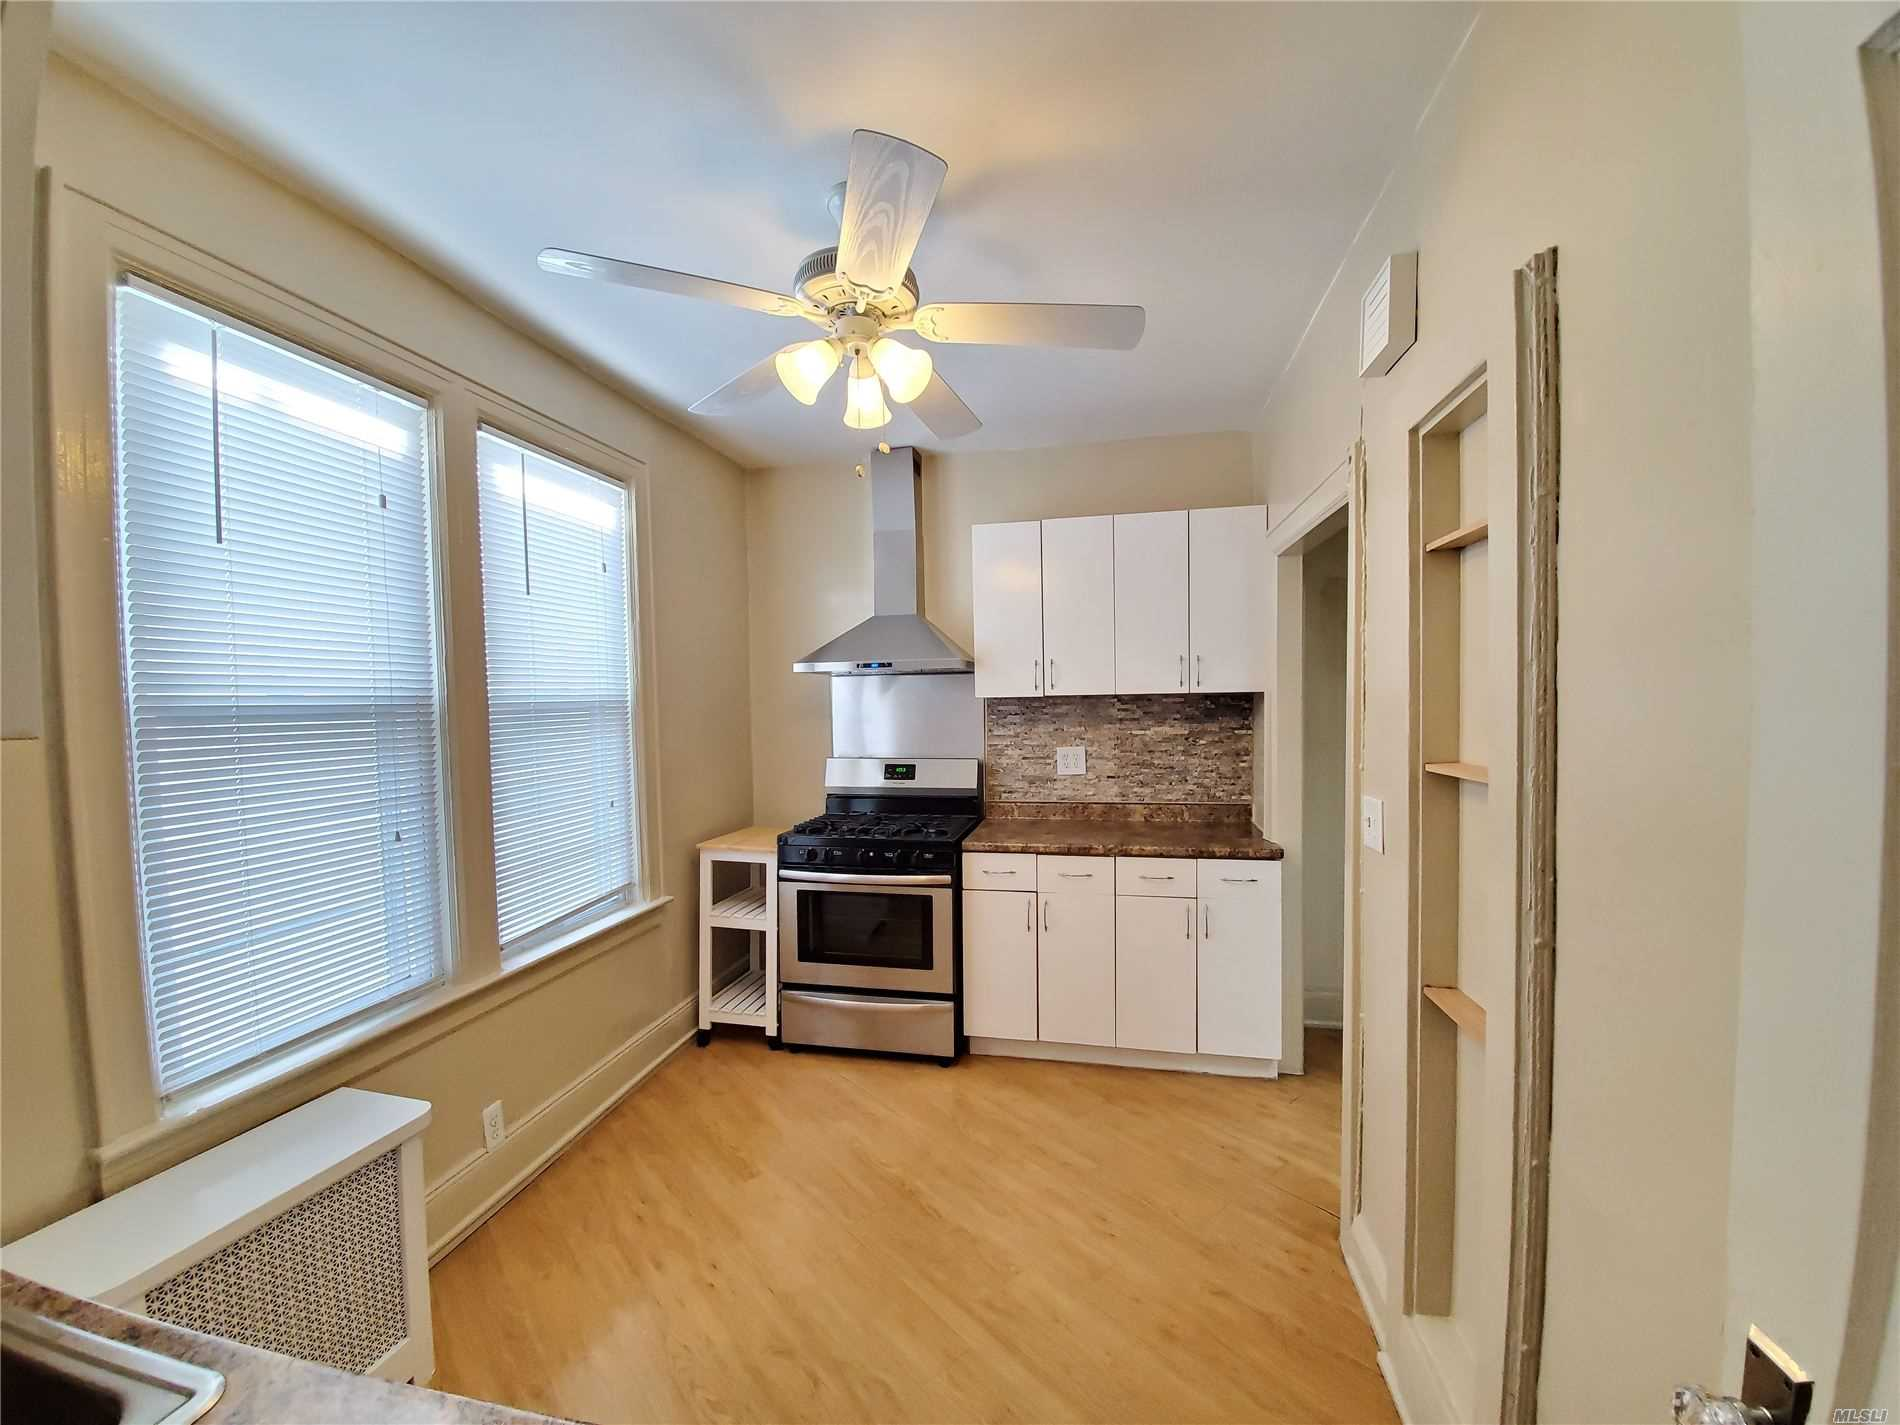 Beautiful spacious one bedroom apartment in the heart of East Elmhurst. Steps away from northern and all shopping and transportation. Must see to appreciate this well maintained residence.